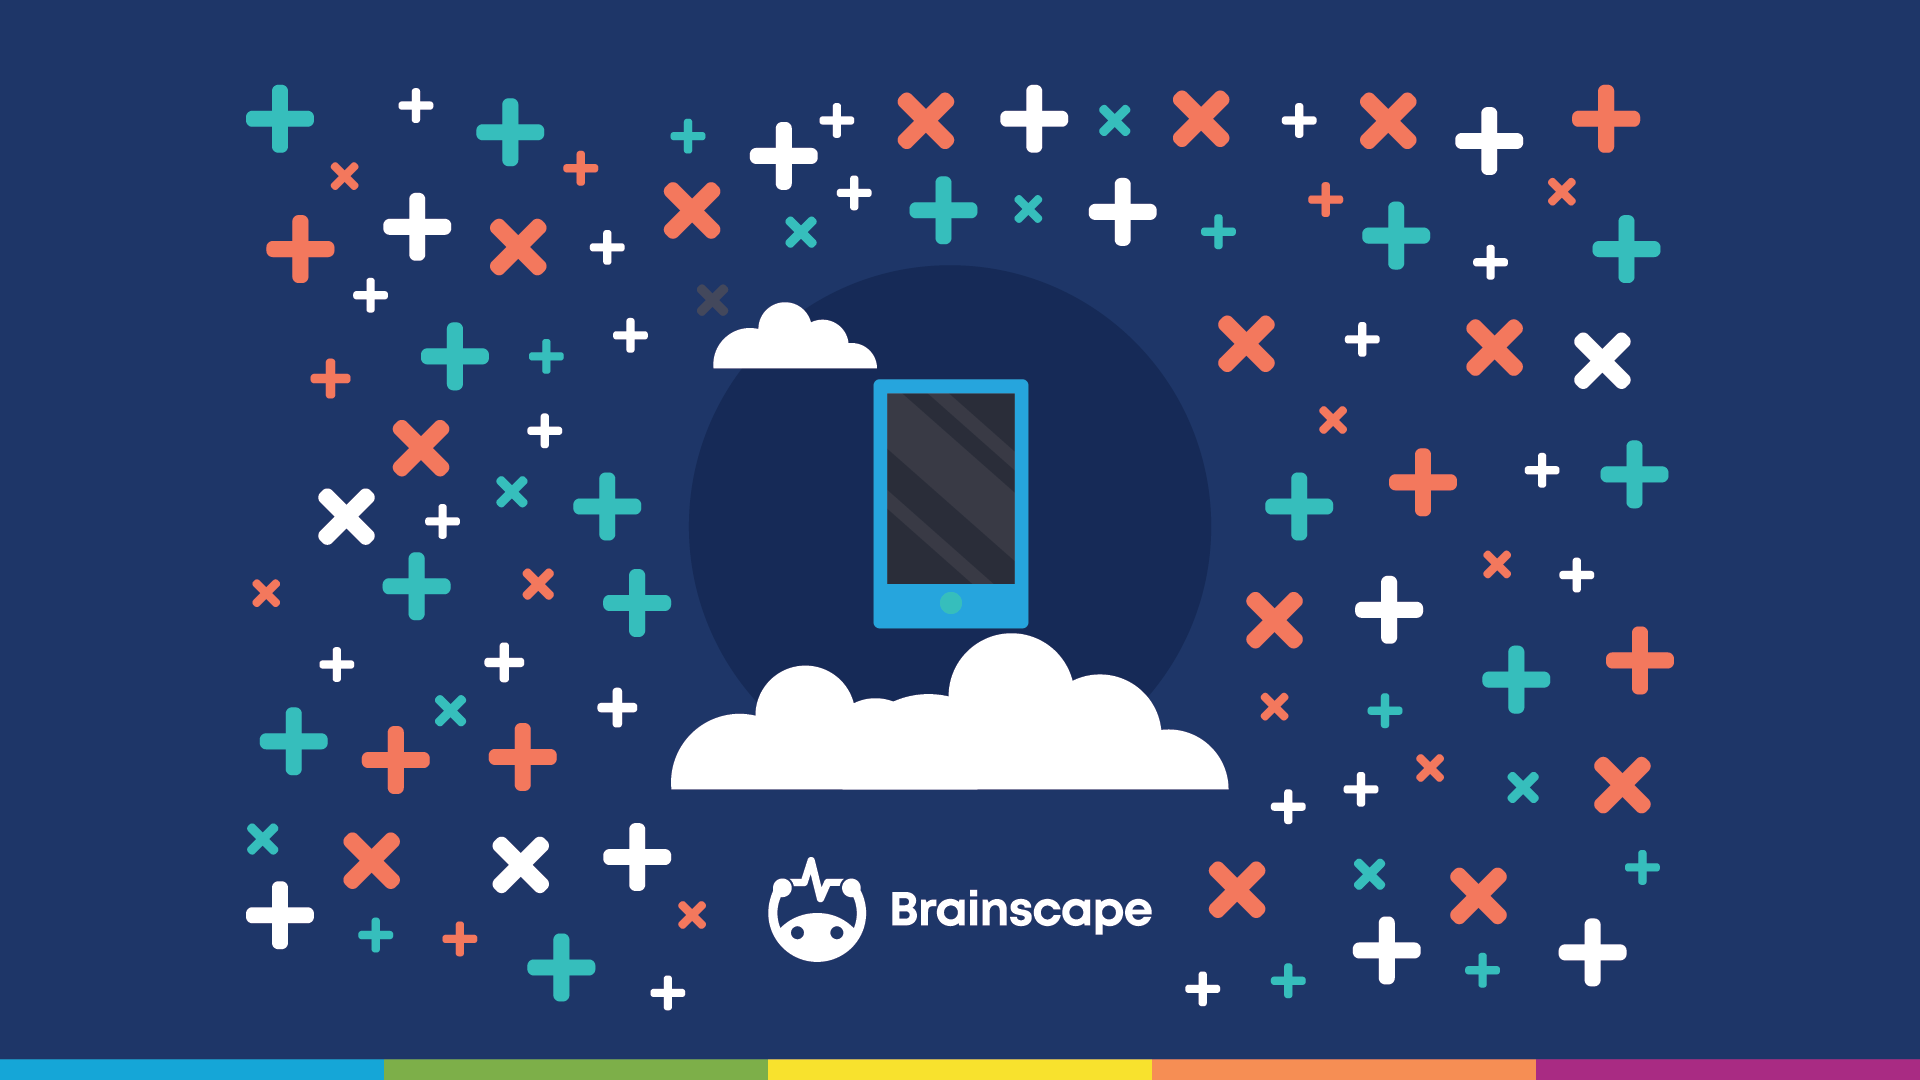 Brainscape helps increase your study motivation